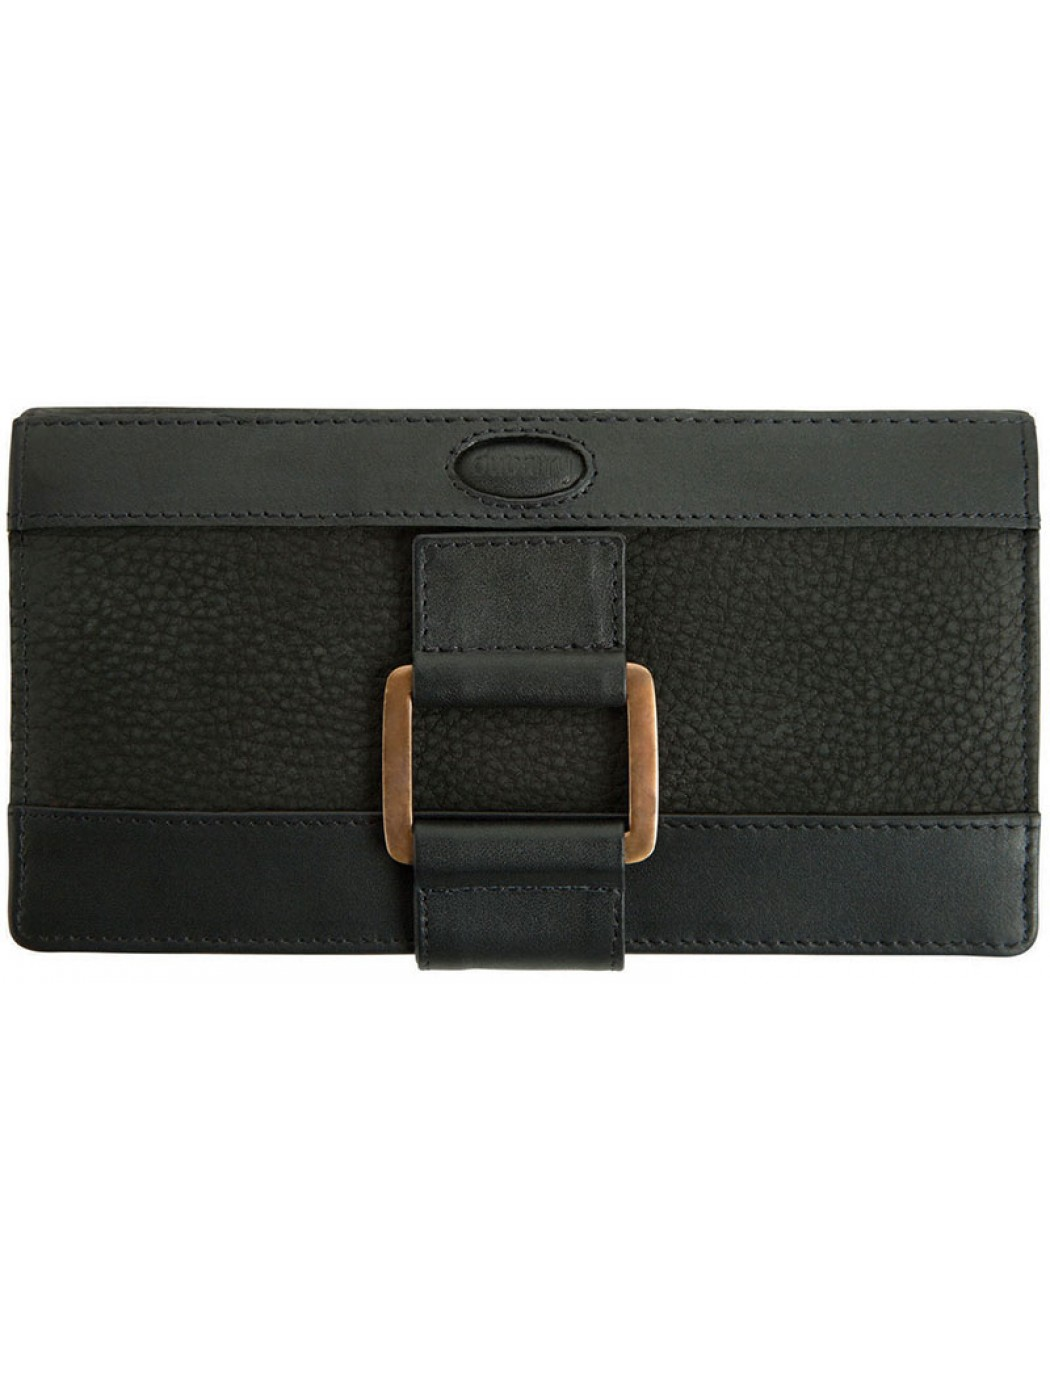 dunbrody-small-gifts-black